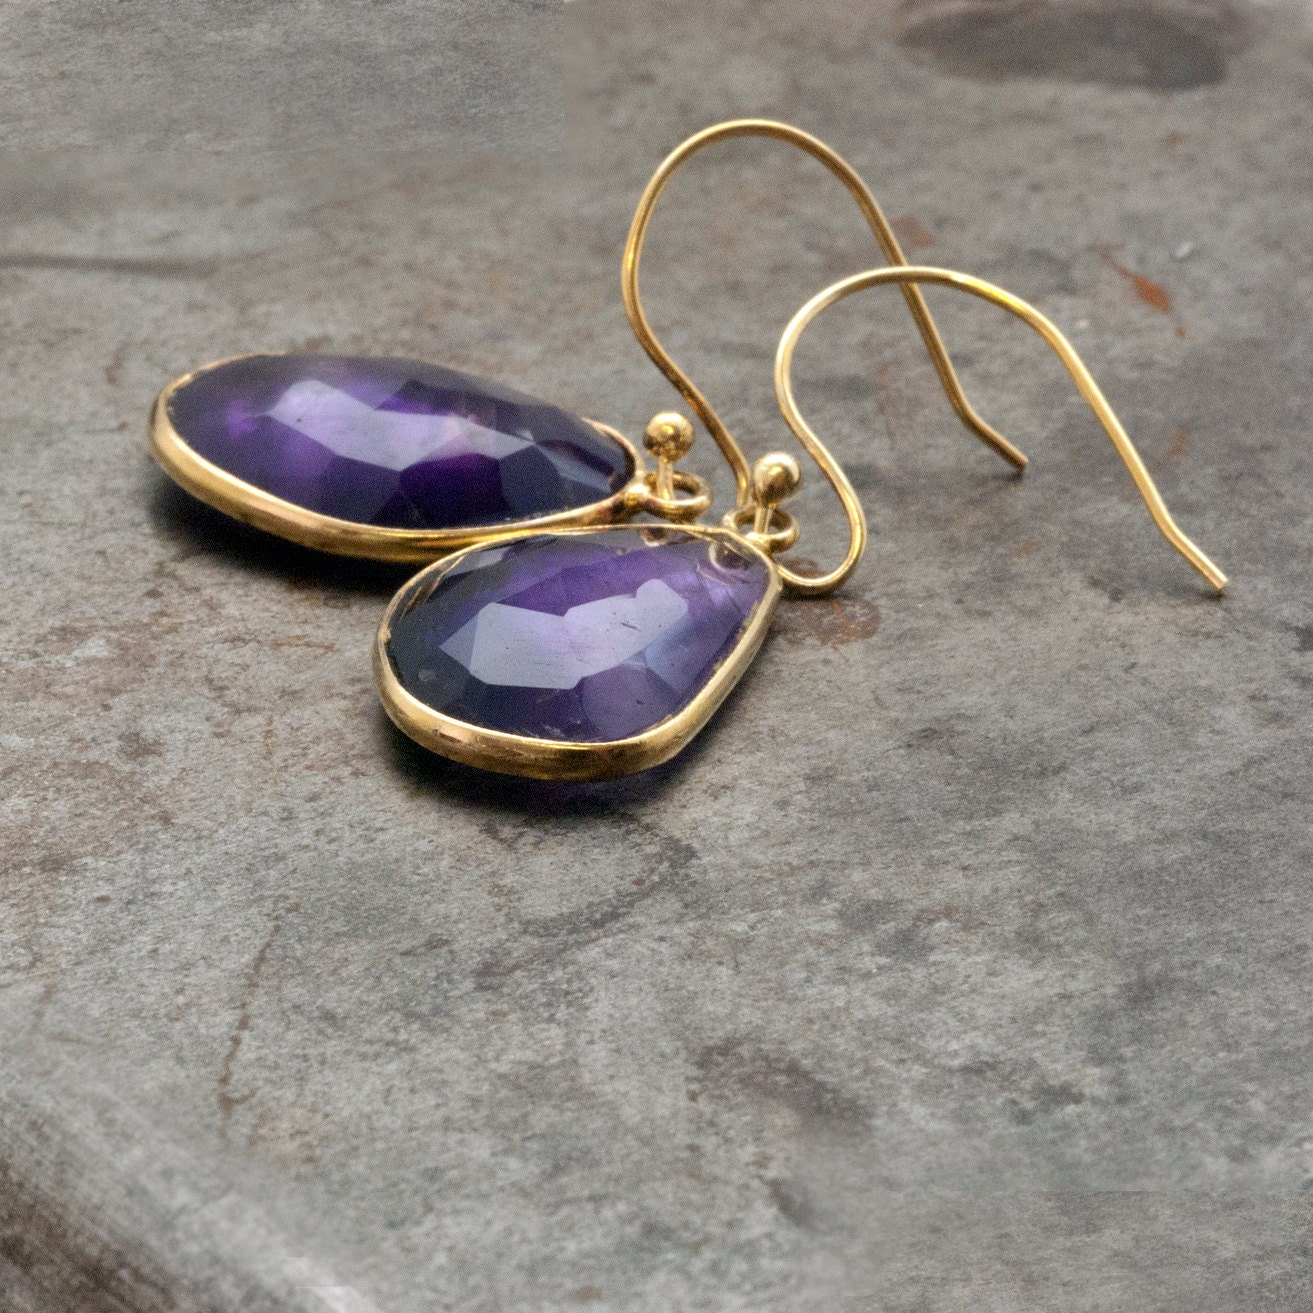 amethyst earrings gold dangle earrings purple drop earrings. Black Bedroom Furniture Sets. Home Design Ideas